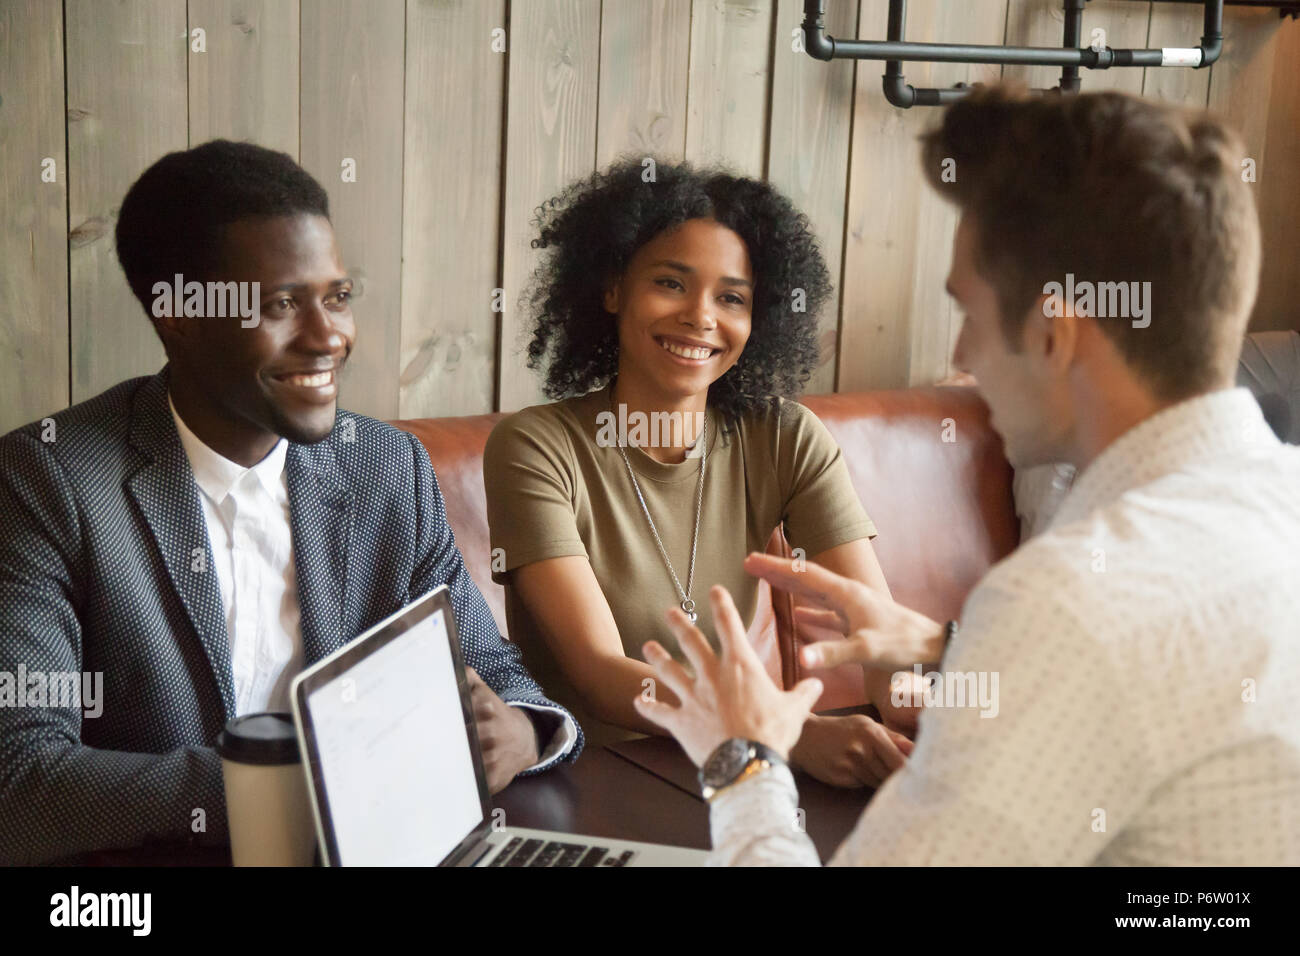 Caucasian architect consulting black clients out in coffee shop - Stock Image